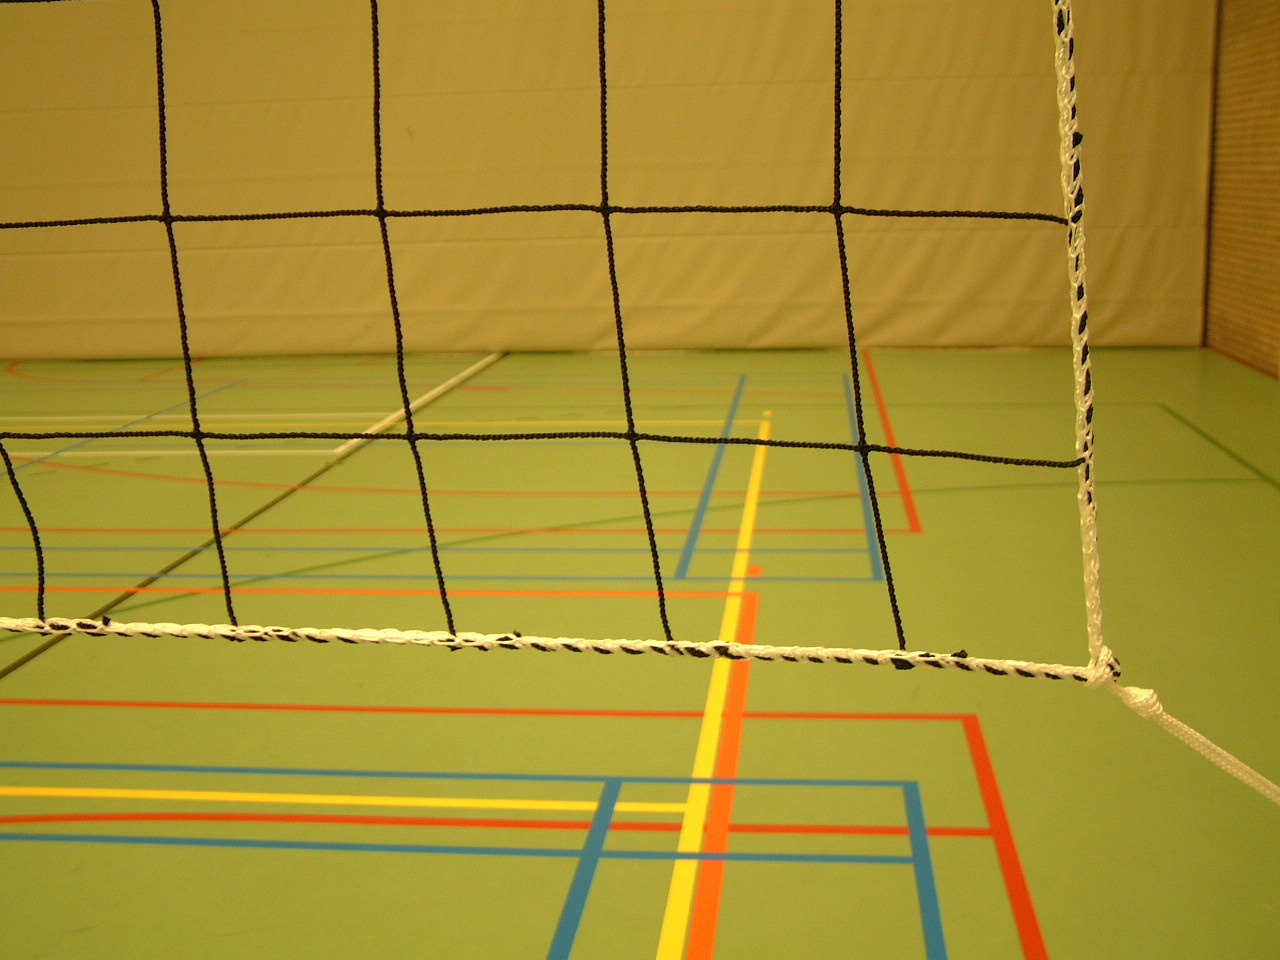 Practice Volleyballnet